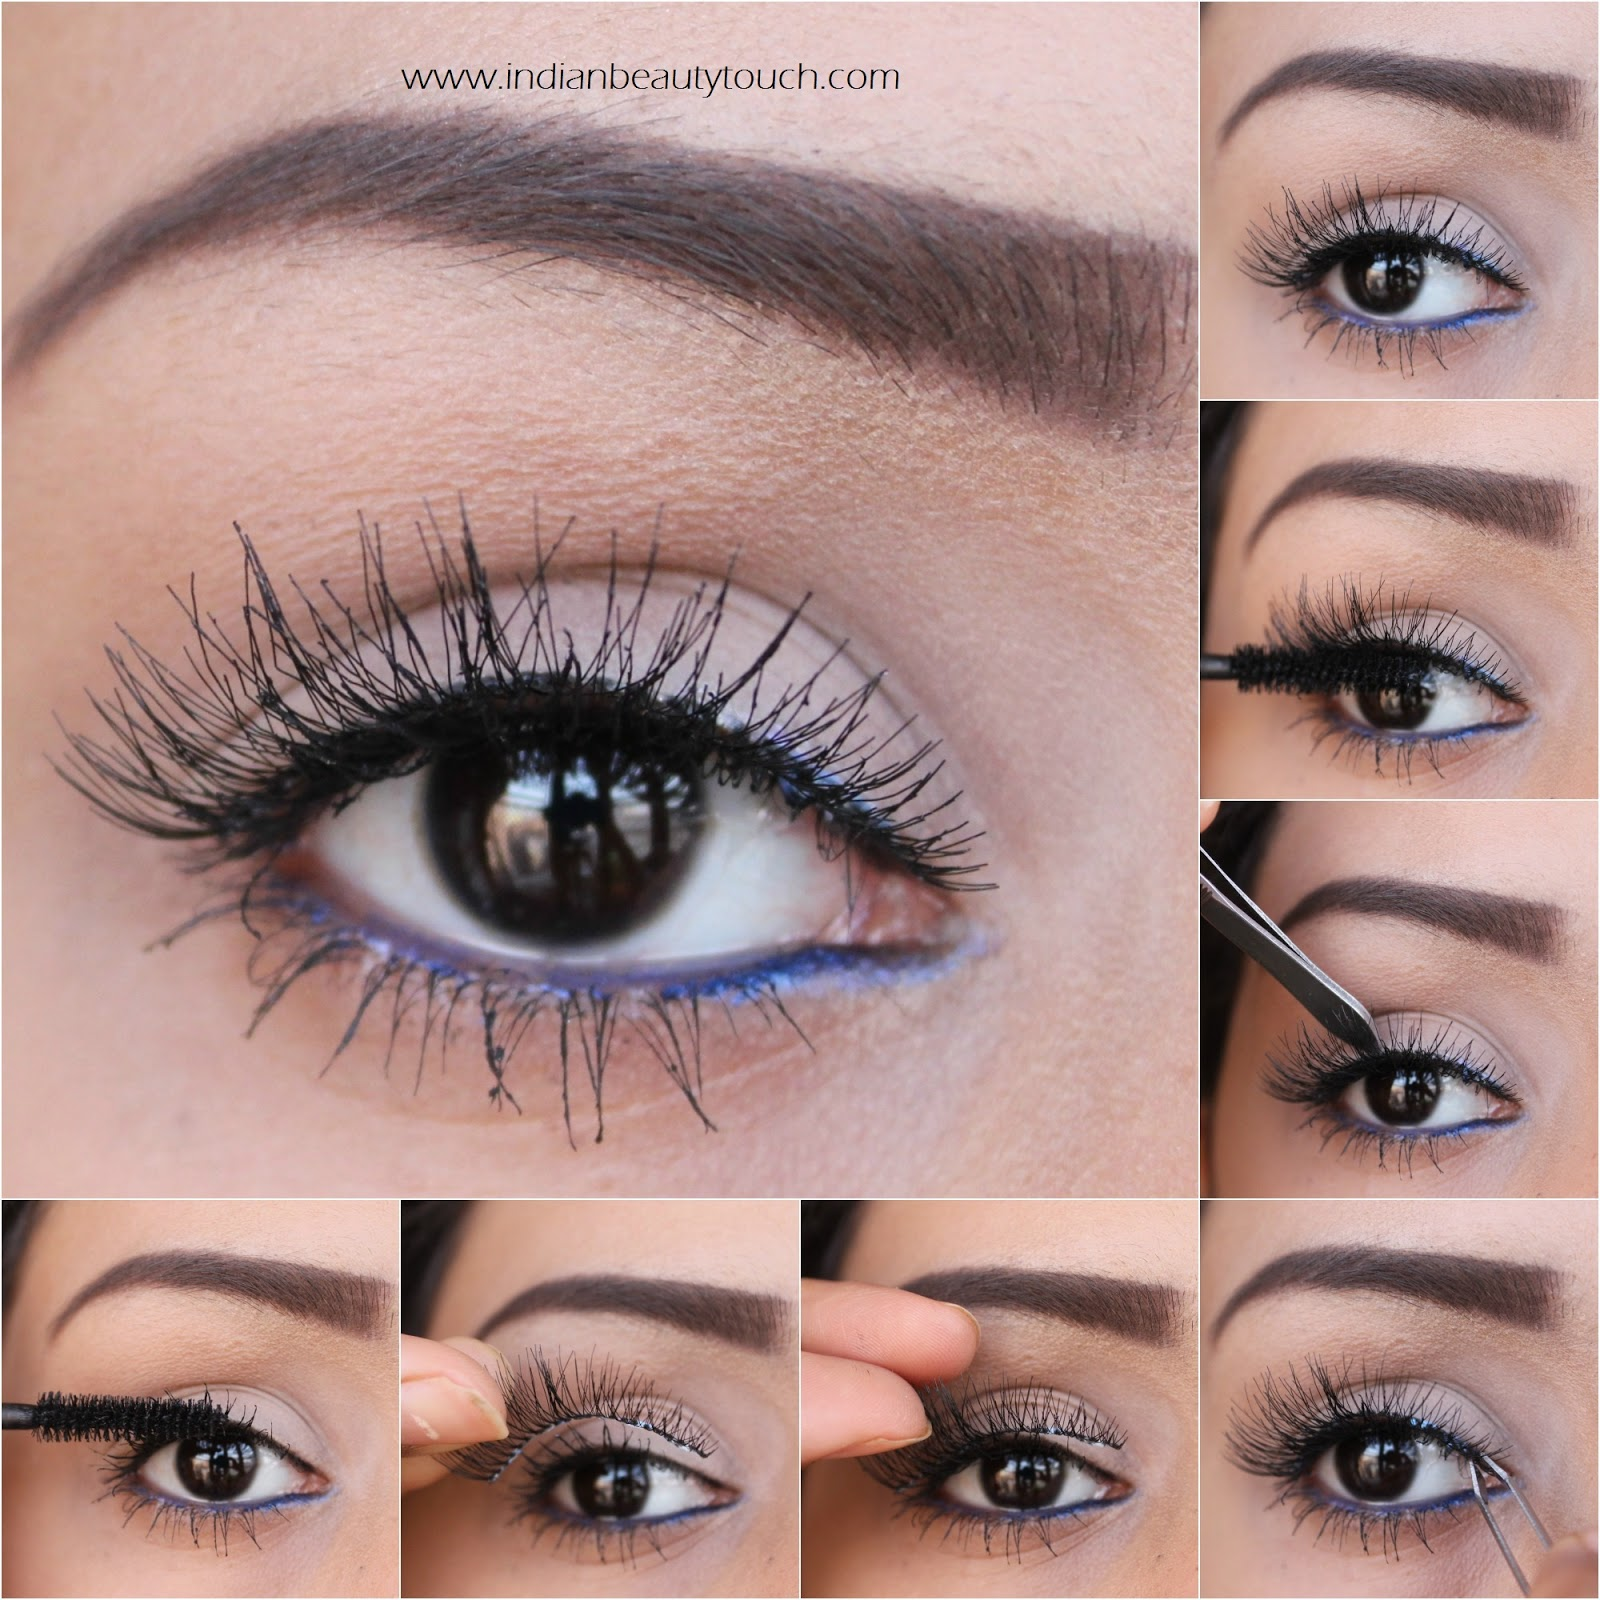 How to Apply False Eyelashes | Indian Beauty Touch